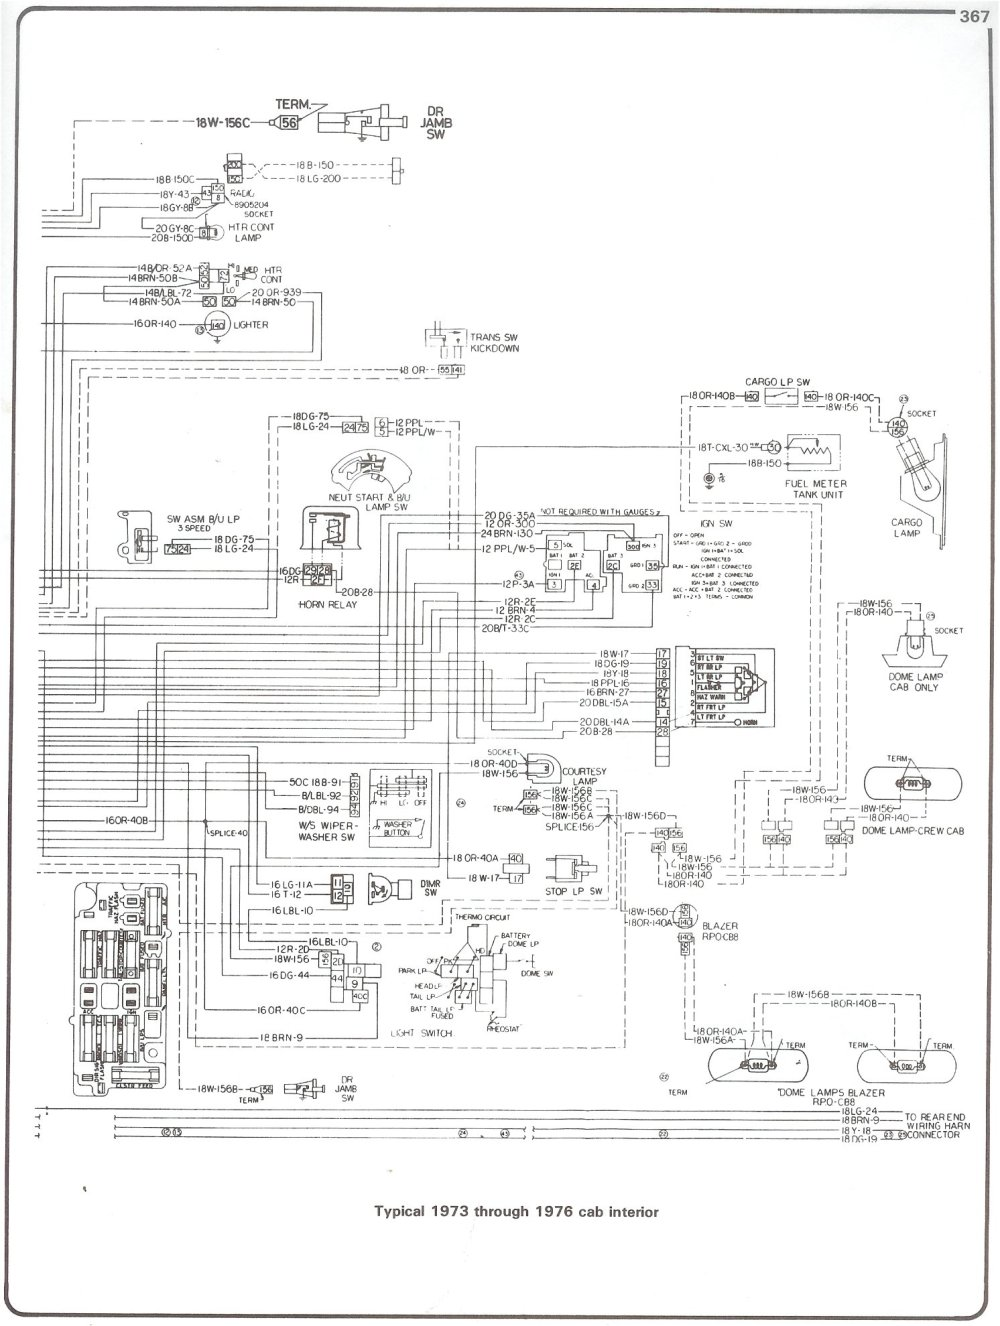 medium resolution of 73 76 cab interior complete 73 87 wiring diagrams